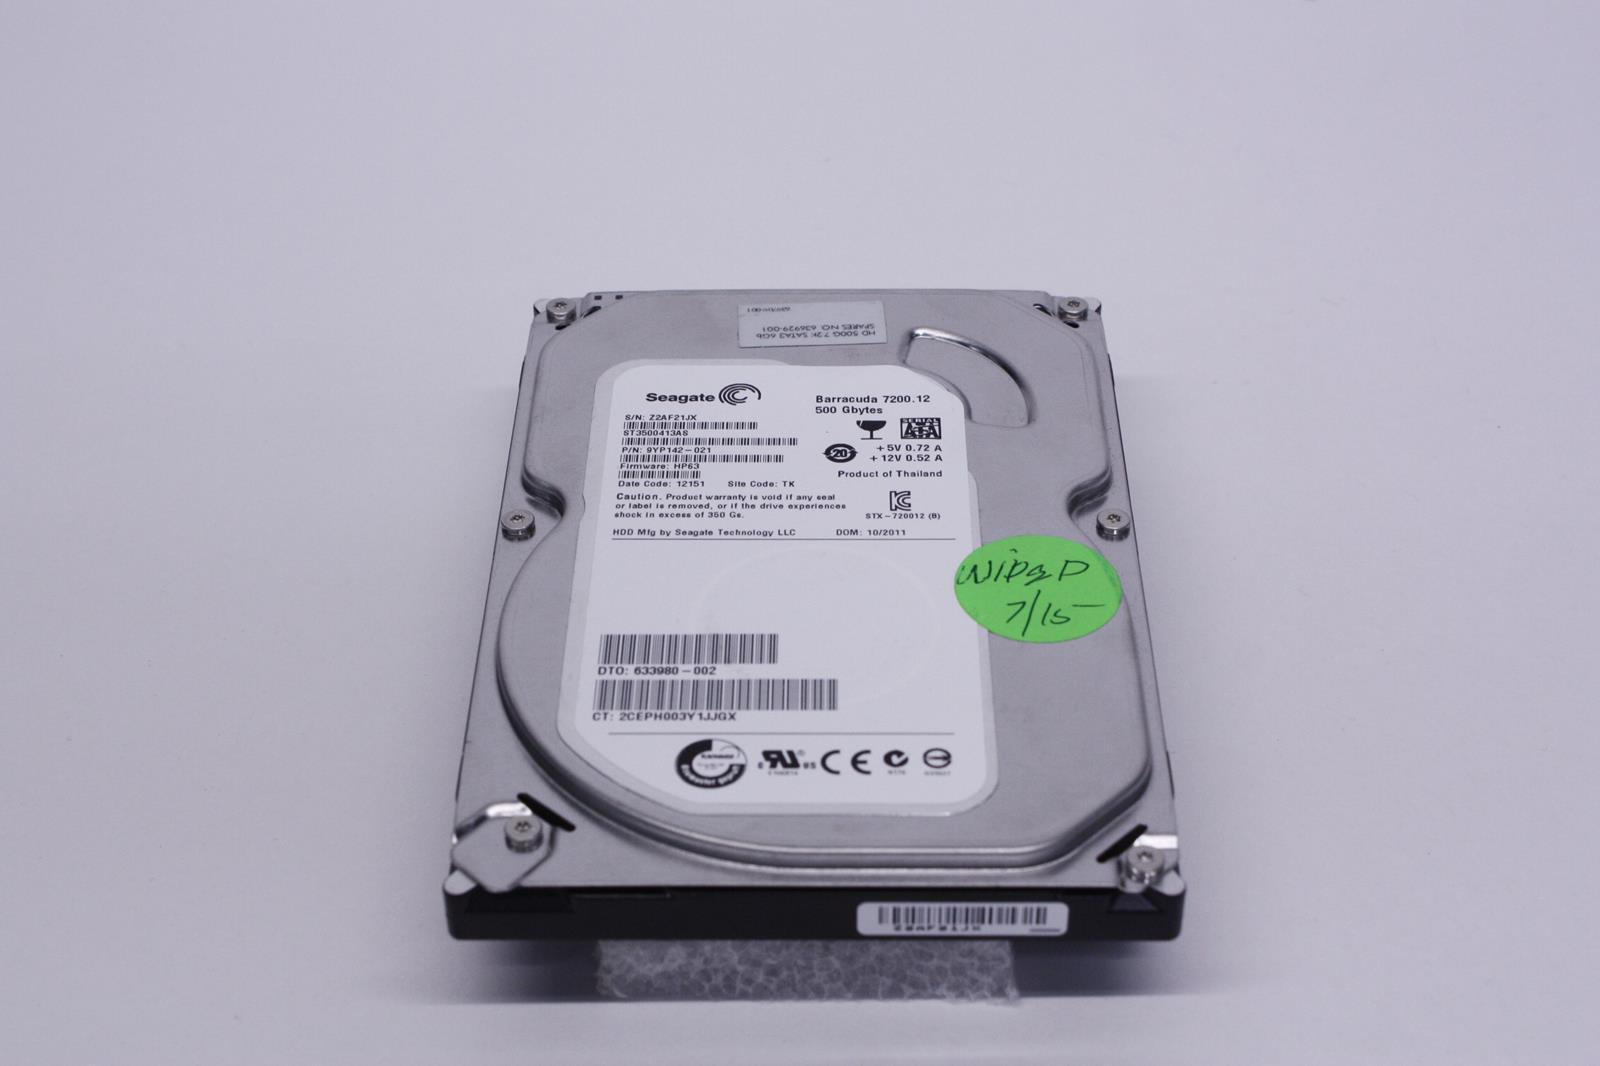 Daftar Harga Hardisk Hdd Internal Laptop Notebook Seagate 25 Inch Vetto Flash Stop Kontak V8206 R7 3m Universal Sni 2x 21a Usb30 Hp 633980 002 St3500413as 9yp142 021 500gb 7200rpm Sata 35